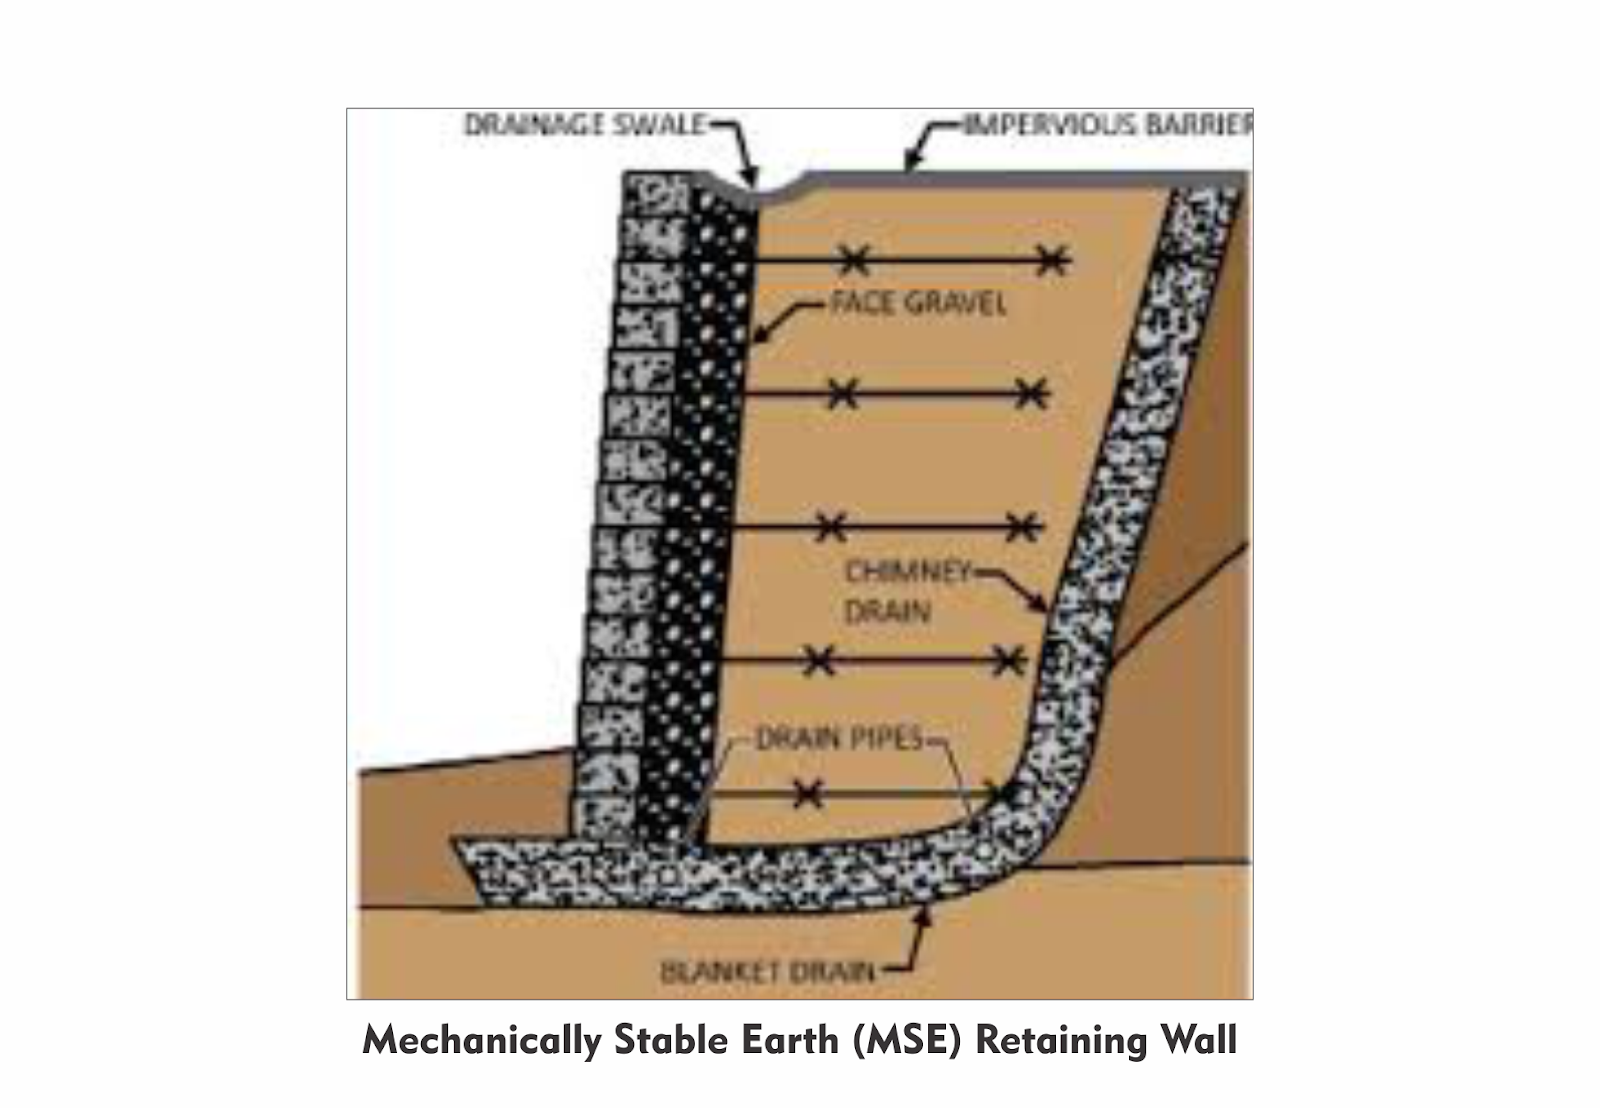 Mechanically Stable Earth